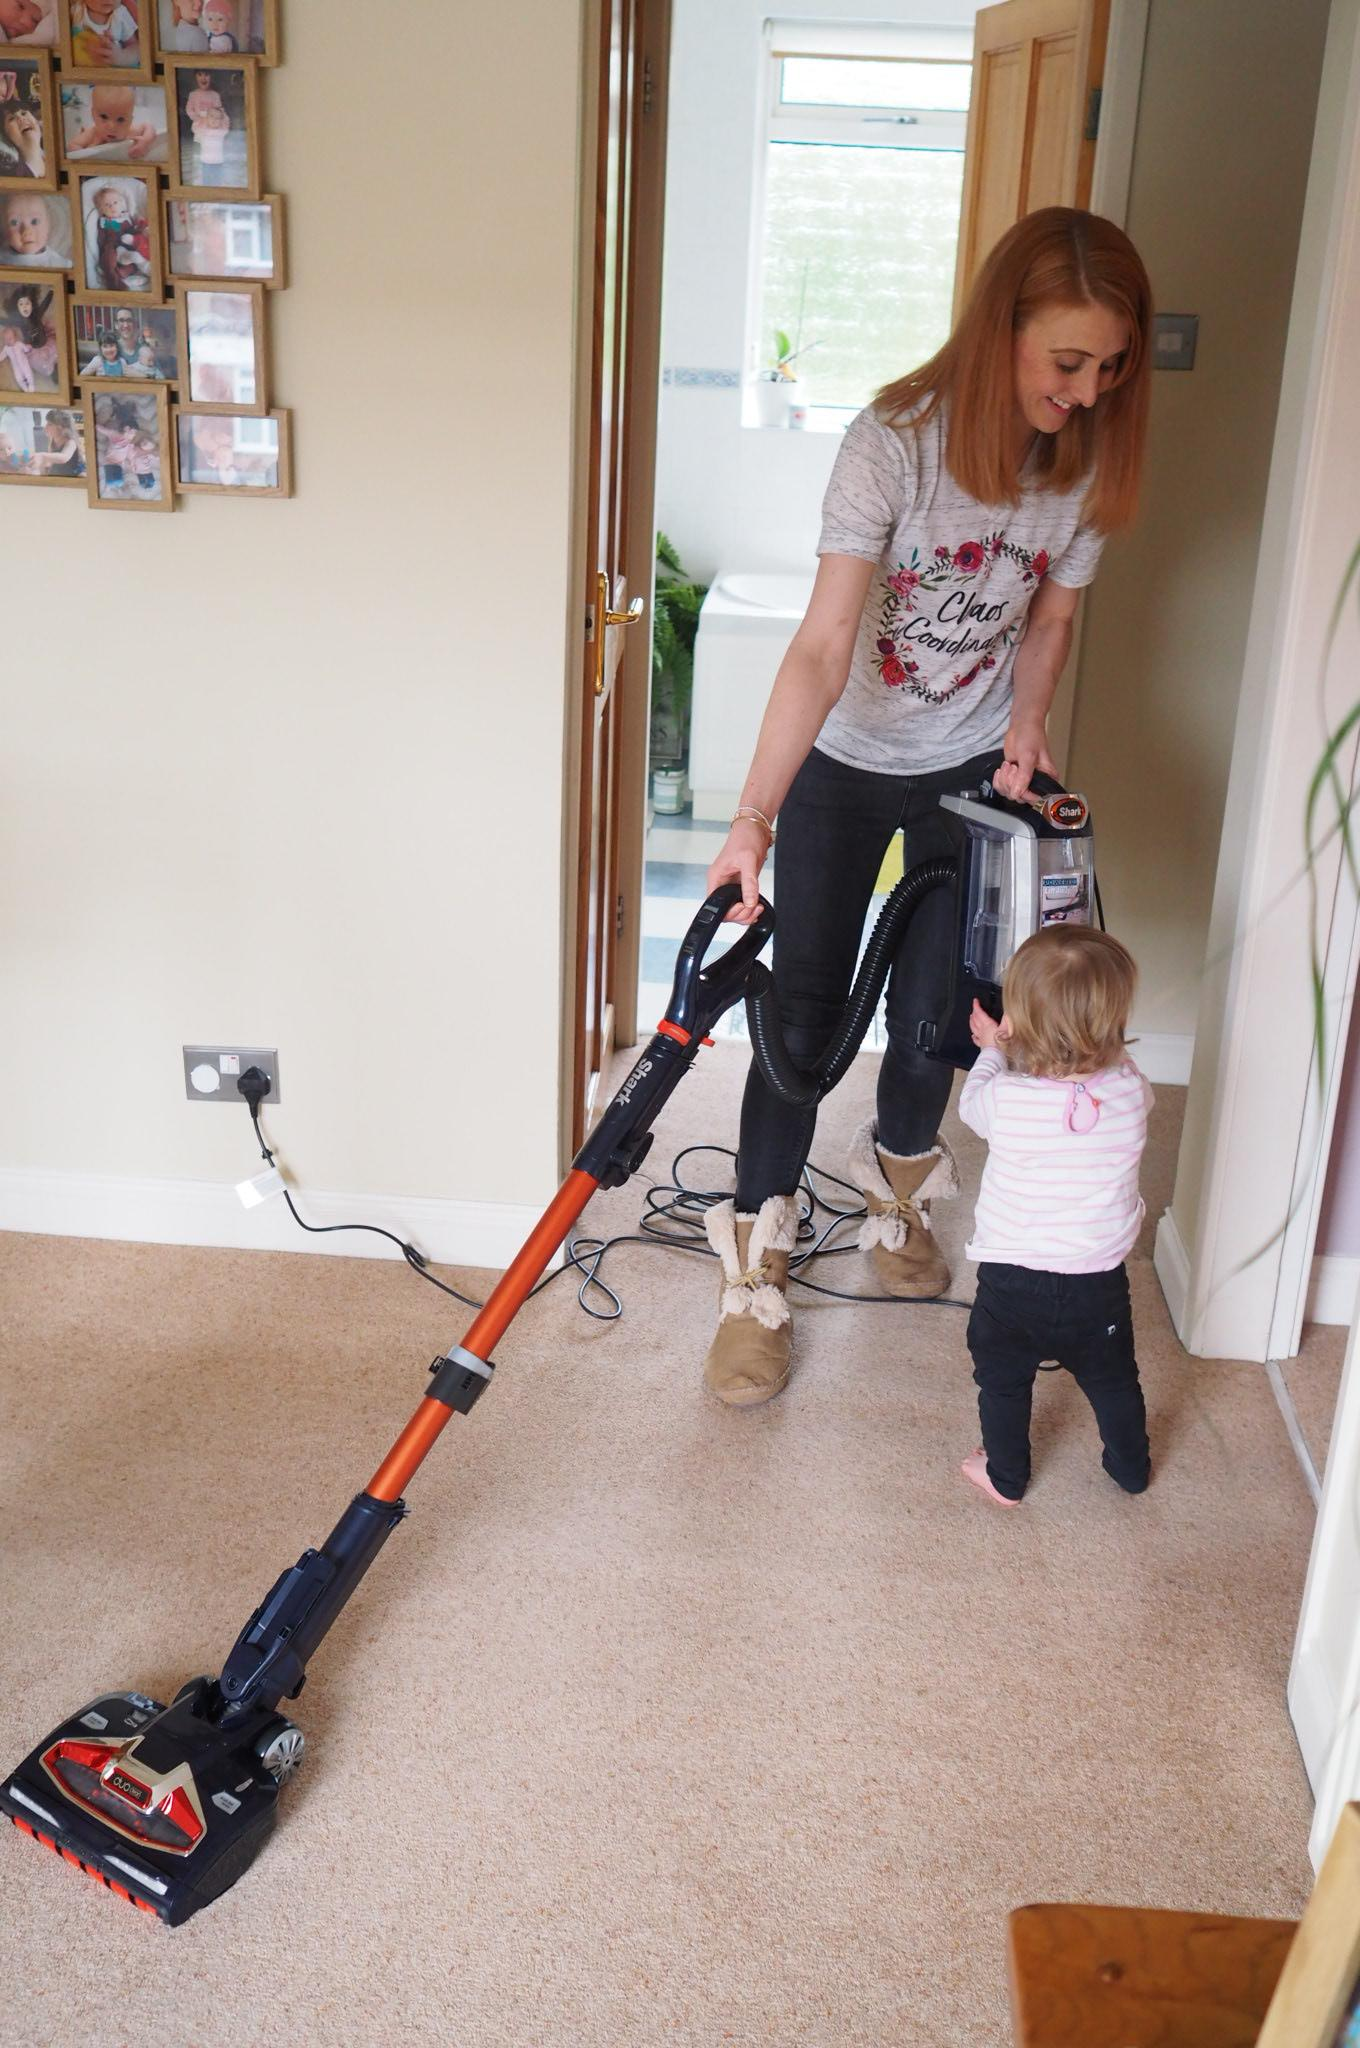 mum hoovering with a Shark hoover